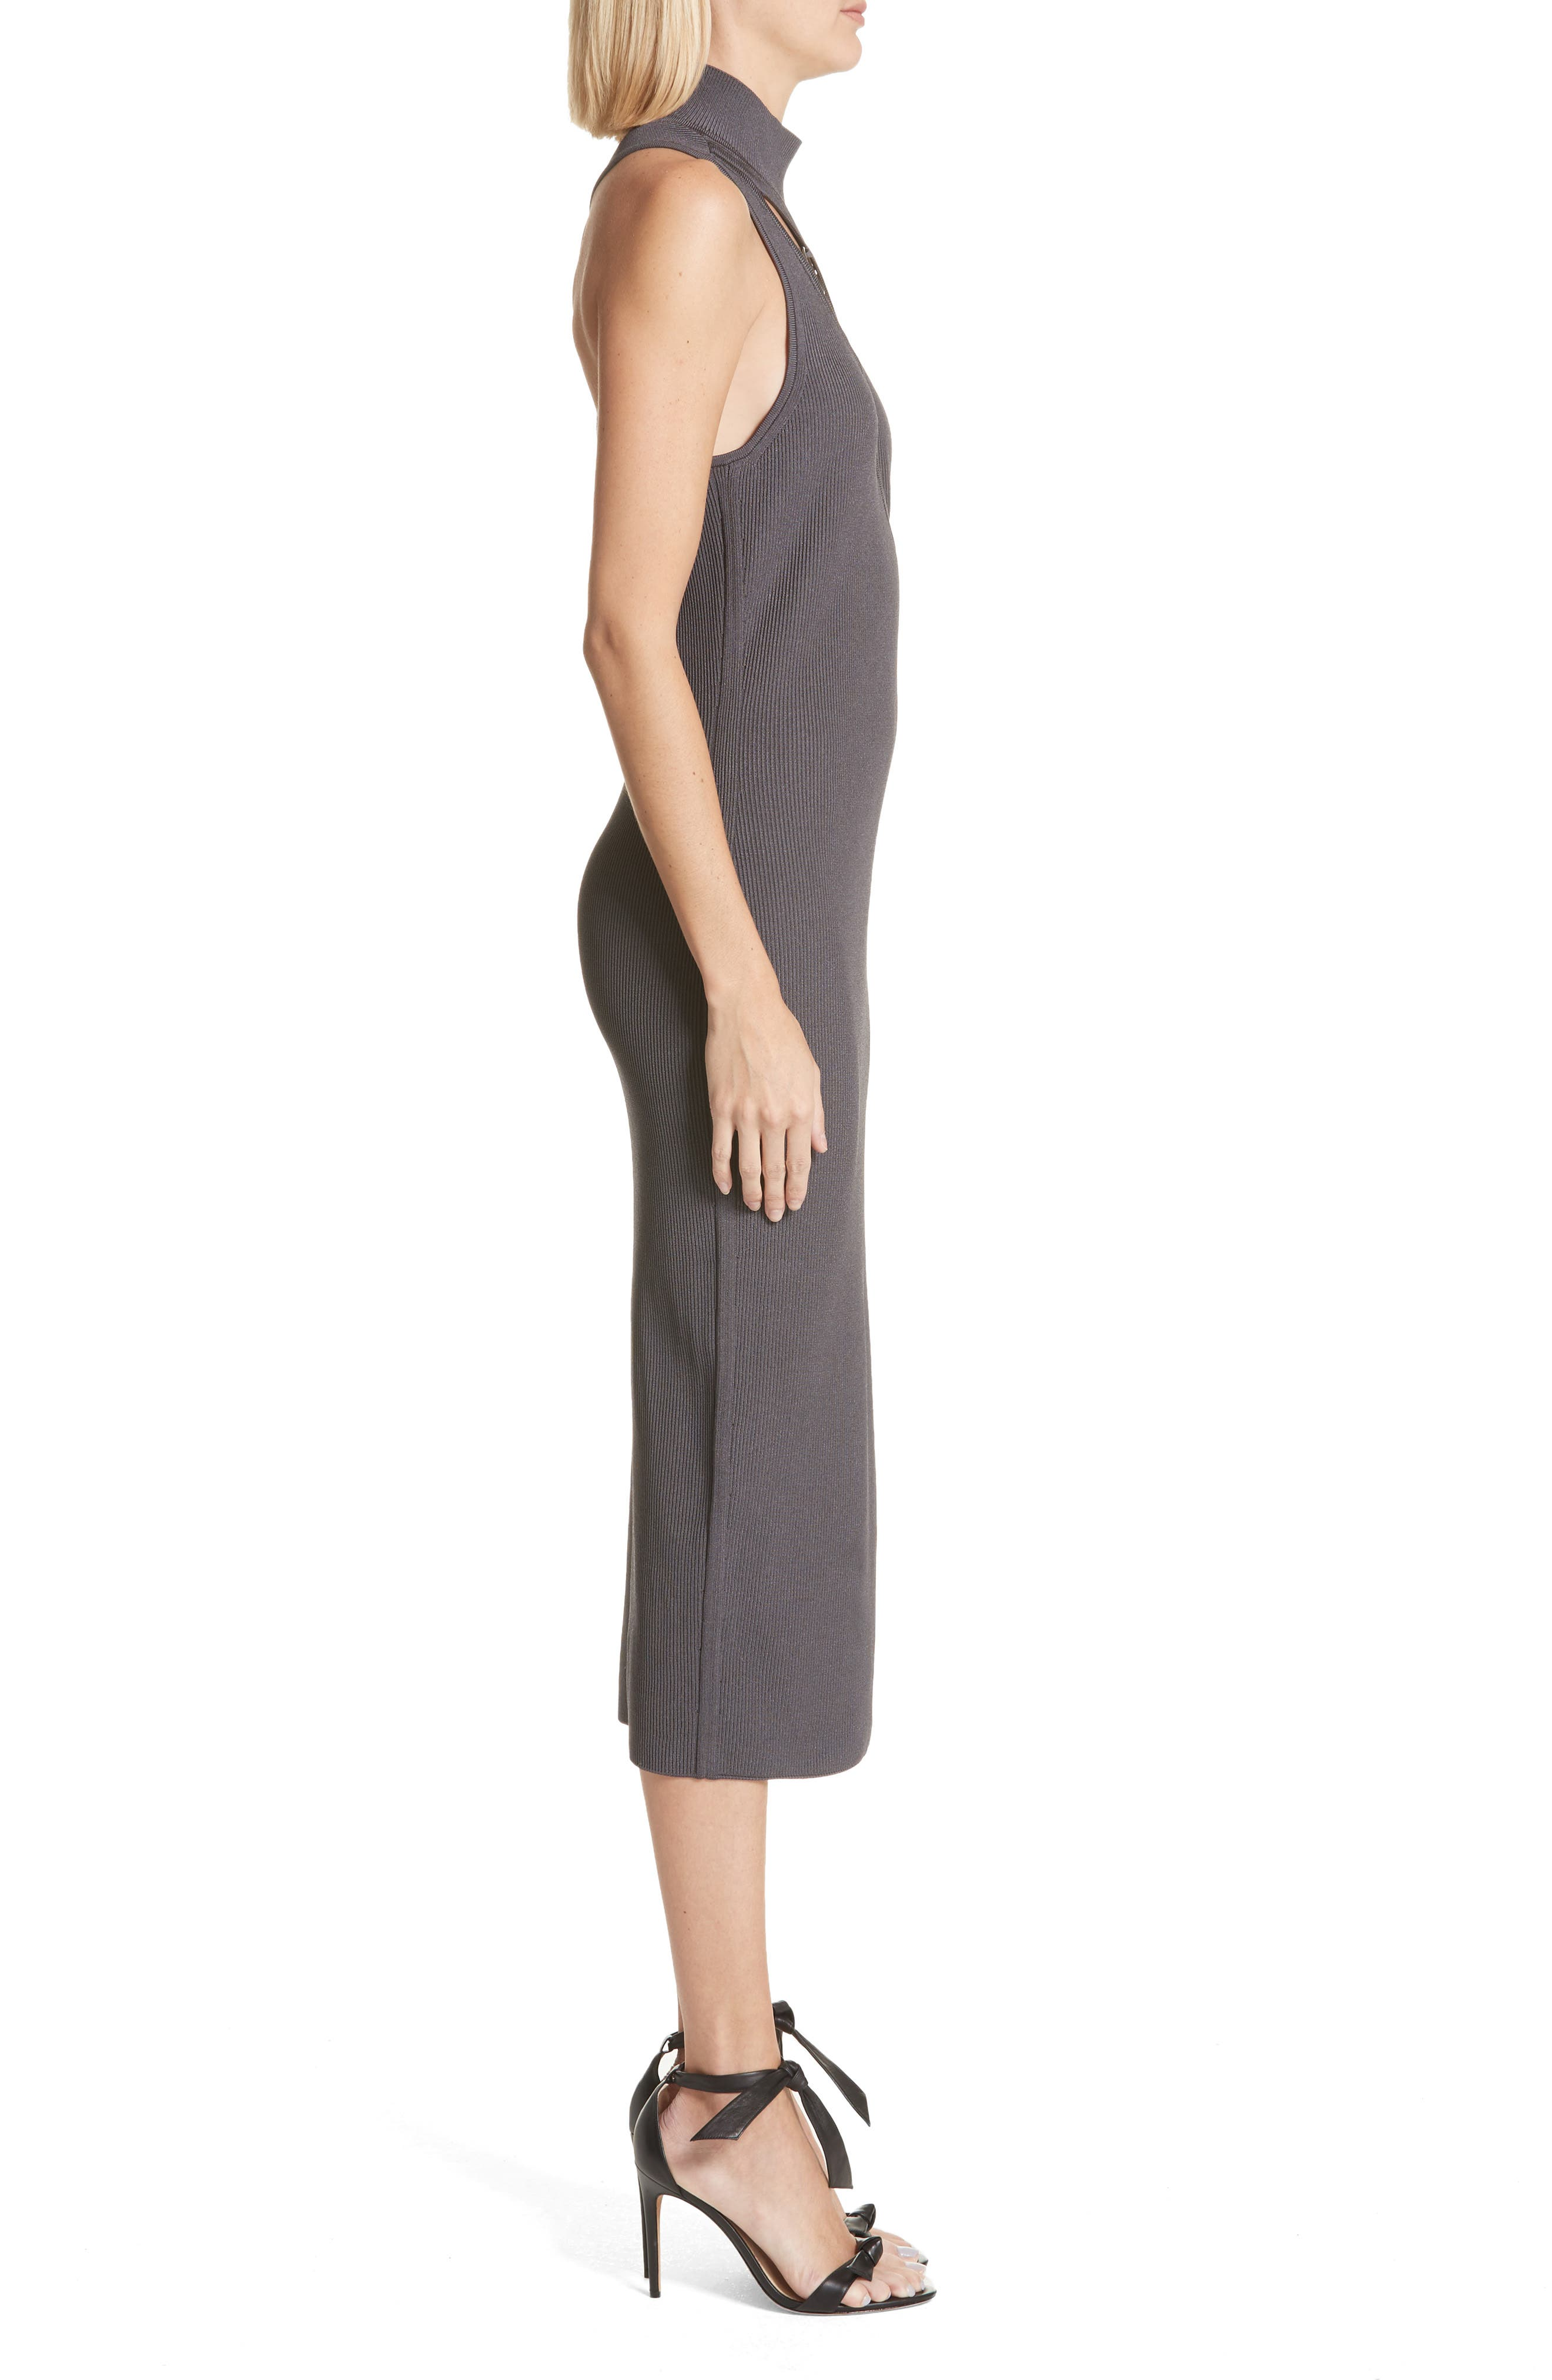 Alsia Cutout Knit Dress,                             Alternate thumbnail 3, color,                             Graphite/ Gunmetal